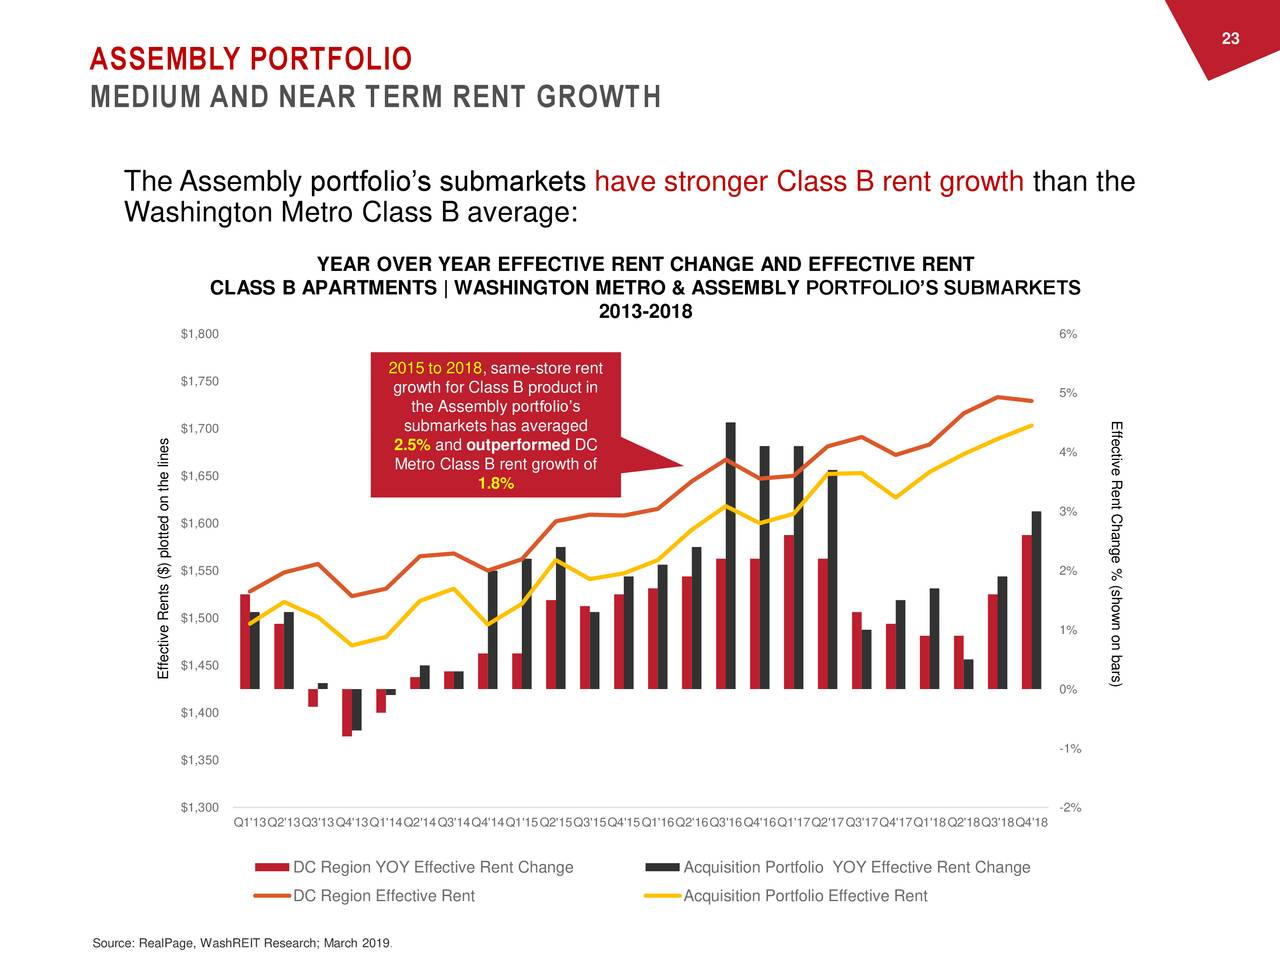 ASSEMBLY PORTFOLIO MEDIUM AND NEAR TERM RENT GROWTH The Assembly portfolio's submarkets have stronger Class B rent growth than the Washington Metro Class B average: YEAR OVER YEAR EFFECTIVE RENT CHANGE AND EFFECTIVE RENT CLASS B APARTMENTS | WASHINGTON METRO & ASSEMBLY PORTFOLIO'S SUBMARKETS 2013-2018 $1,800 6% 2015 to 2018, same-store rent $1,750 growth for Class B product in 5% the Assembly portfolio's Effective Rent Change $1,700 submarkets has averaged 2.5% and outperformed DC 4% $1,650 Metro Class B rent growth of 1.8% 3% $1,600 % (shown on bars) $1,550 2% R$1,500$) plotted on the lines 1% $1,450 Effective 0% $1,400 -1% $1,350 $1,300 -2% Q1'13Q2'13Q3'13Q4'13Q1'14Q2'14Q3'14Q4'14Q1'15Q2'15Q3'15Q4'15Q1'16Q2'16Q3'16Q4'16Q1'17Q2'17Q3'17Q4'17Q1'18Q2'18Q3'18Q4'18 DC Region YOY Effective Rent Change Acquisition Portfolio YOY Effective Rent Change DC Region Effective Rent Acquisition Portfolio Effective Rent Source: RealPage, WashREIT Research; March 2019.